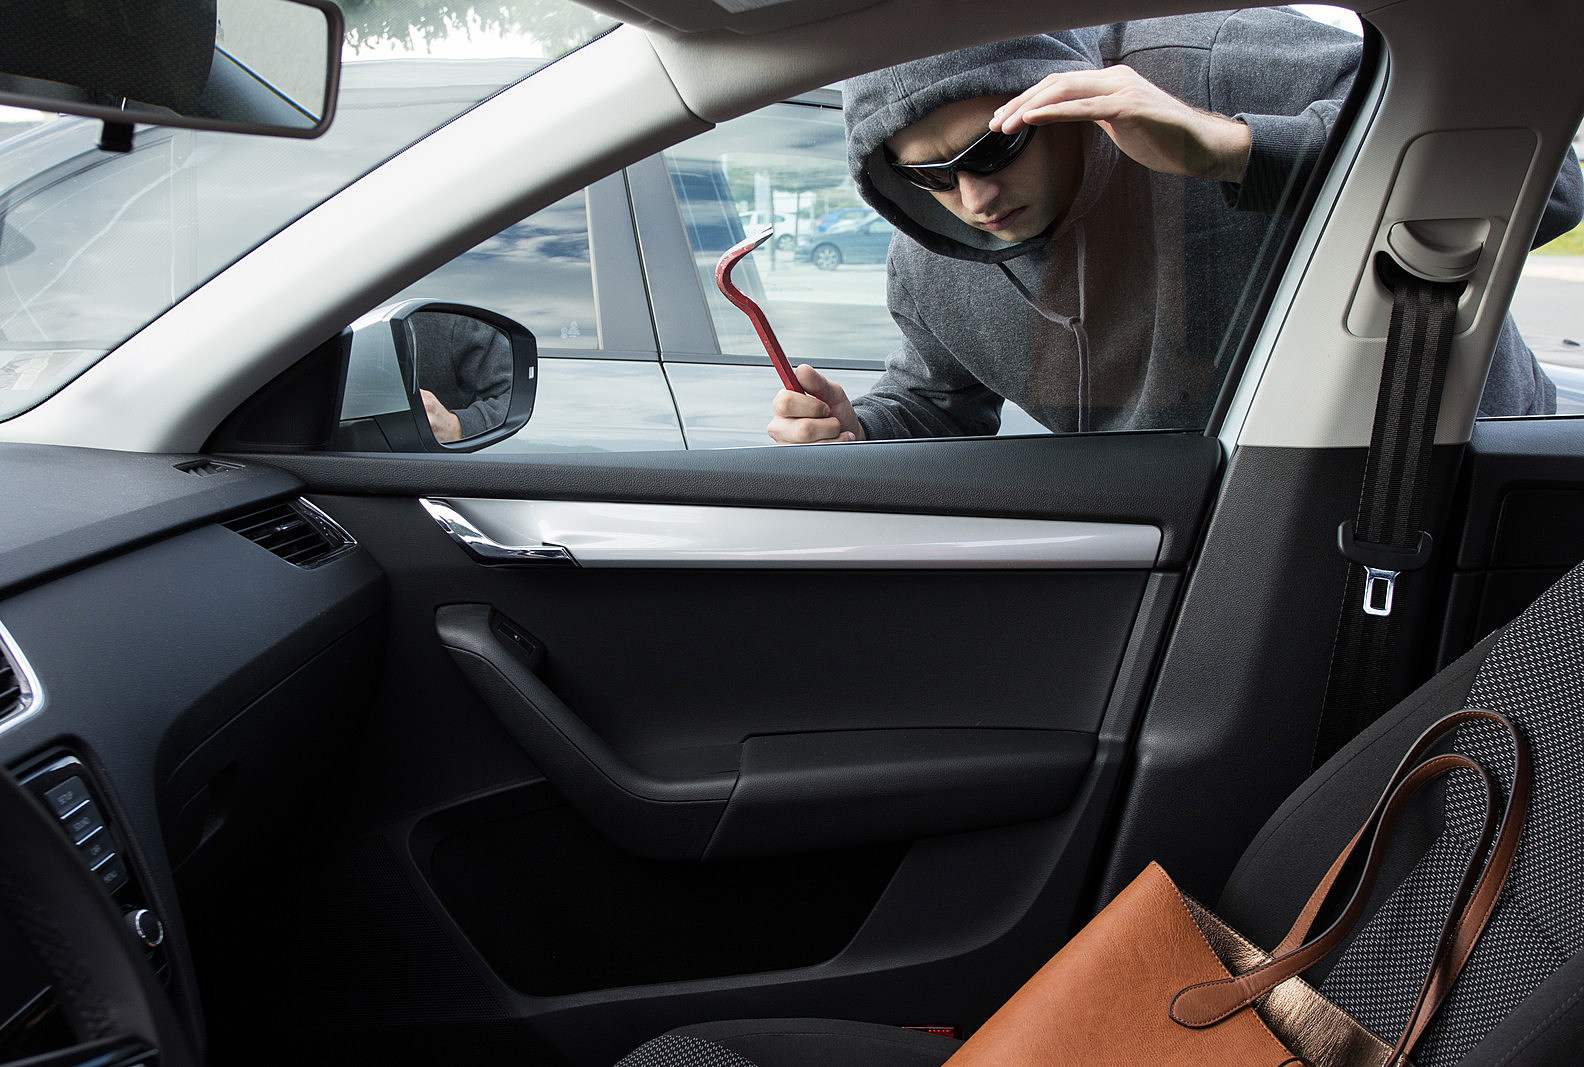 Thief wearing black hooded jacket and sunglasses is looking for unattended valuables left in a car. - Getty Images